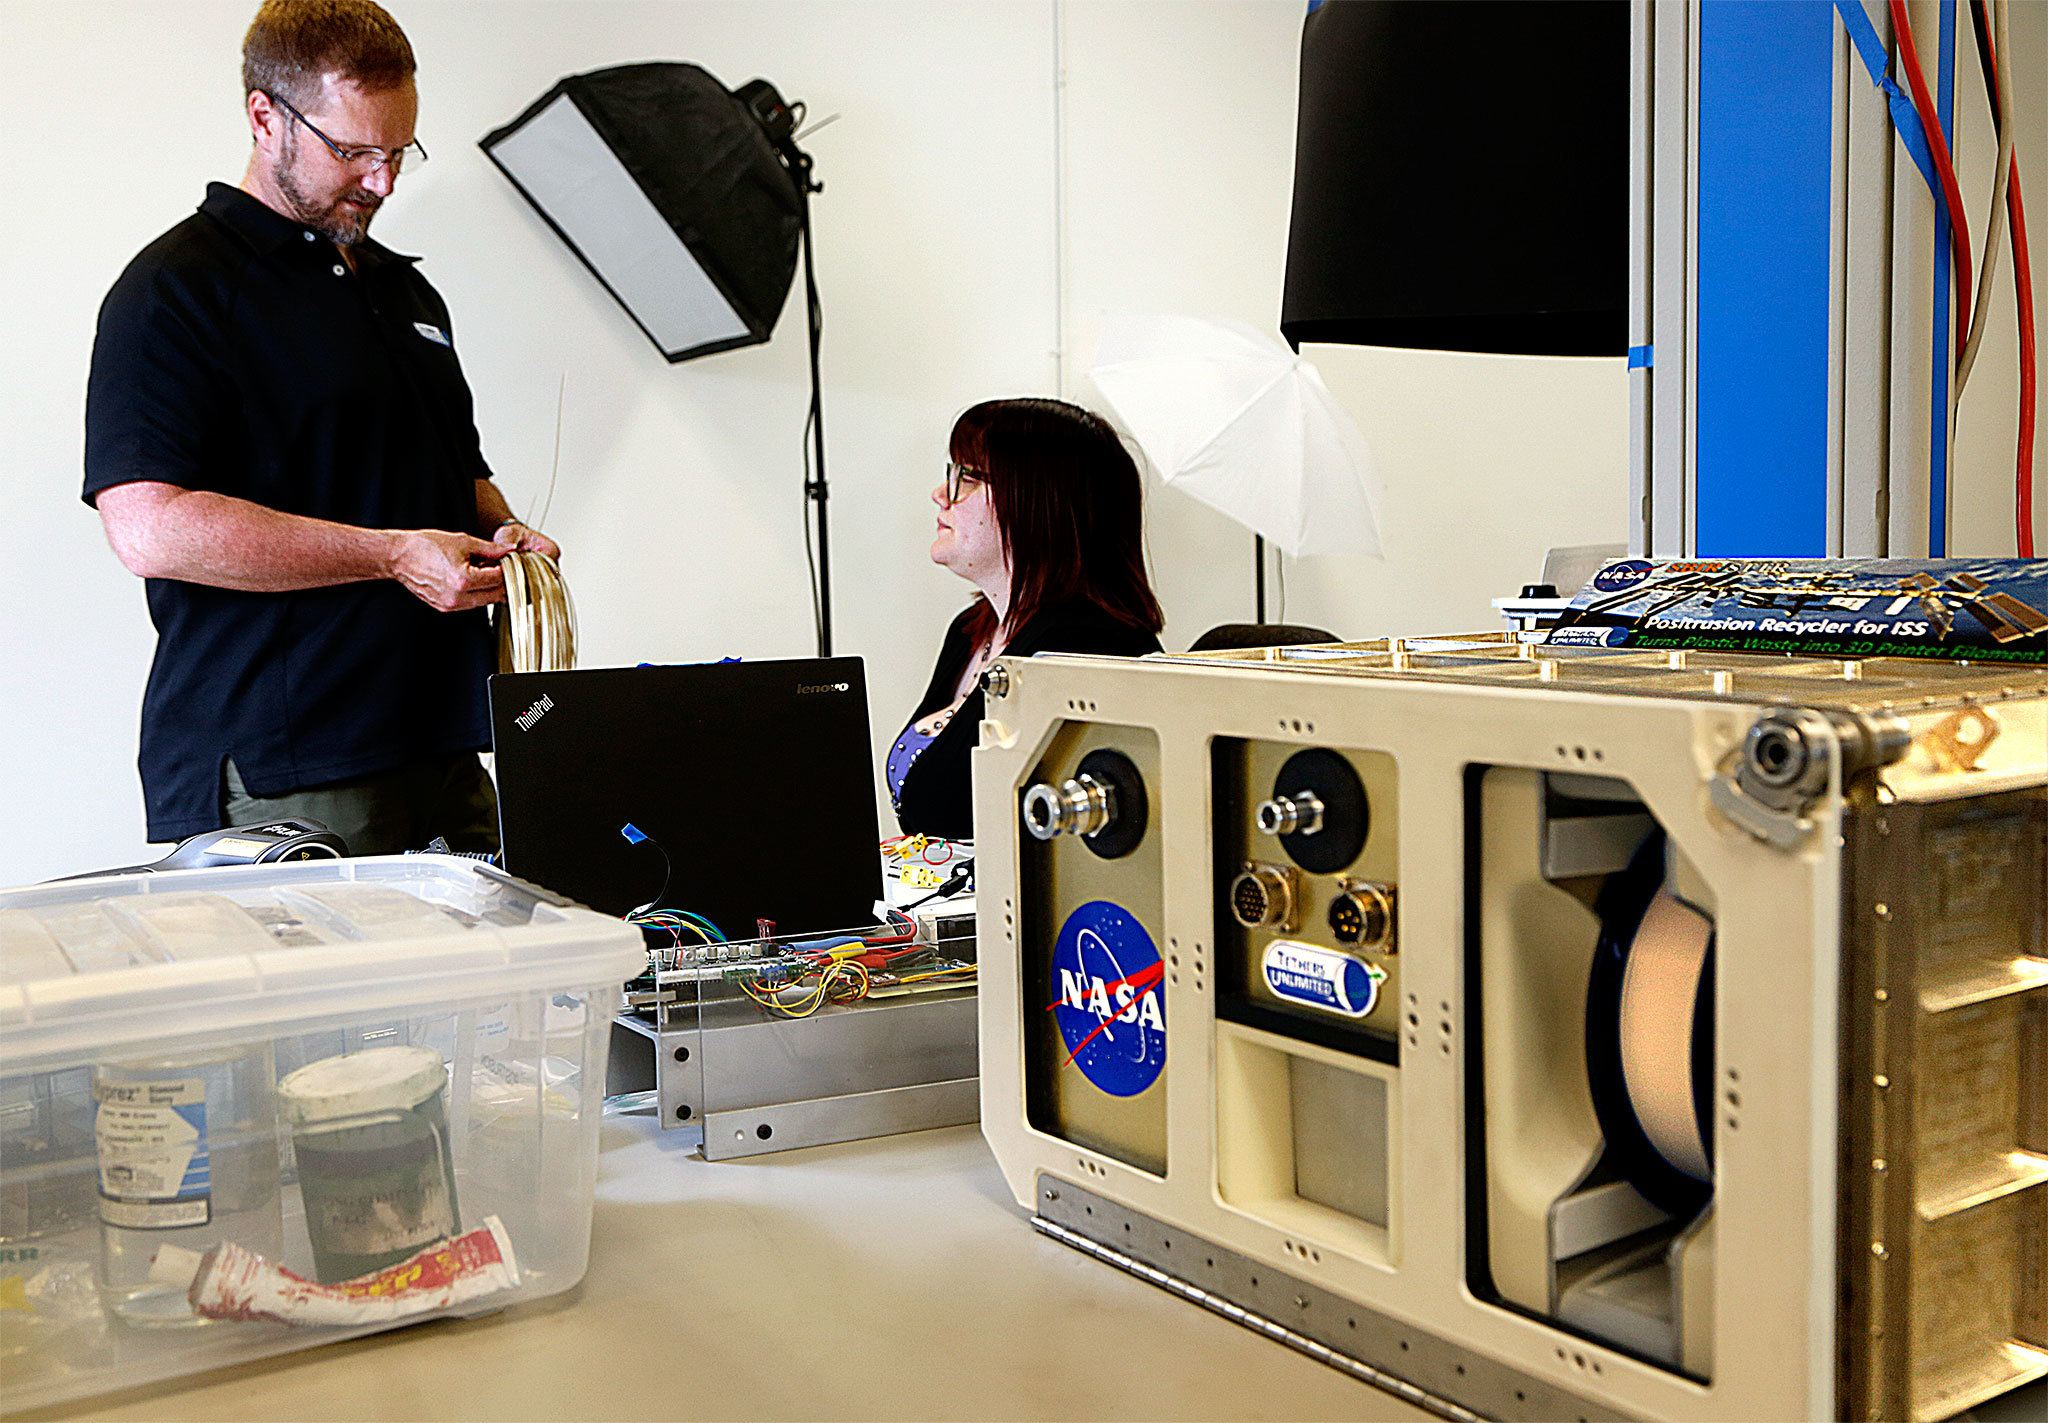 Dr. Robert Hoyt (left, holding a roll of the 3D printer filament) talks with Dr. Rachel Muhlbauer in an area of the lab where they have been photographing component parts of TUI's Positrusion Recycler for the International Space Station. The recycler turns plastic waste into 3D printer filament that can be used to create needed replacement parts for repairs conducted in space.